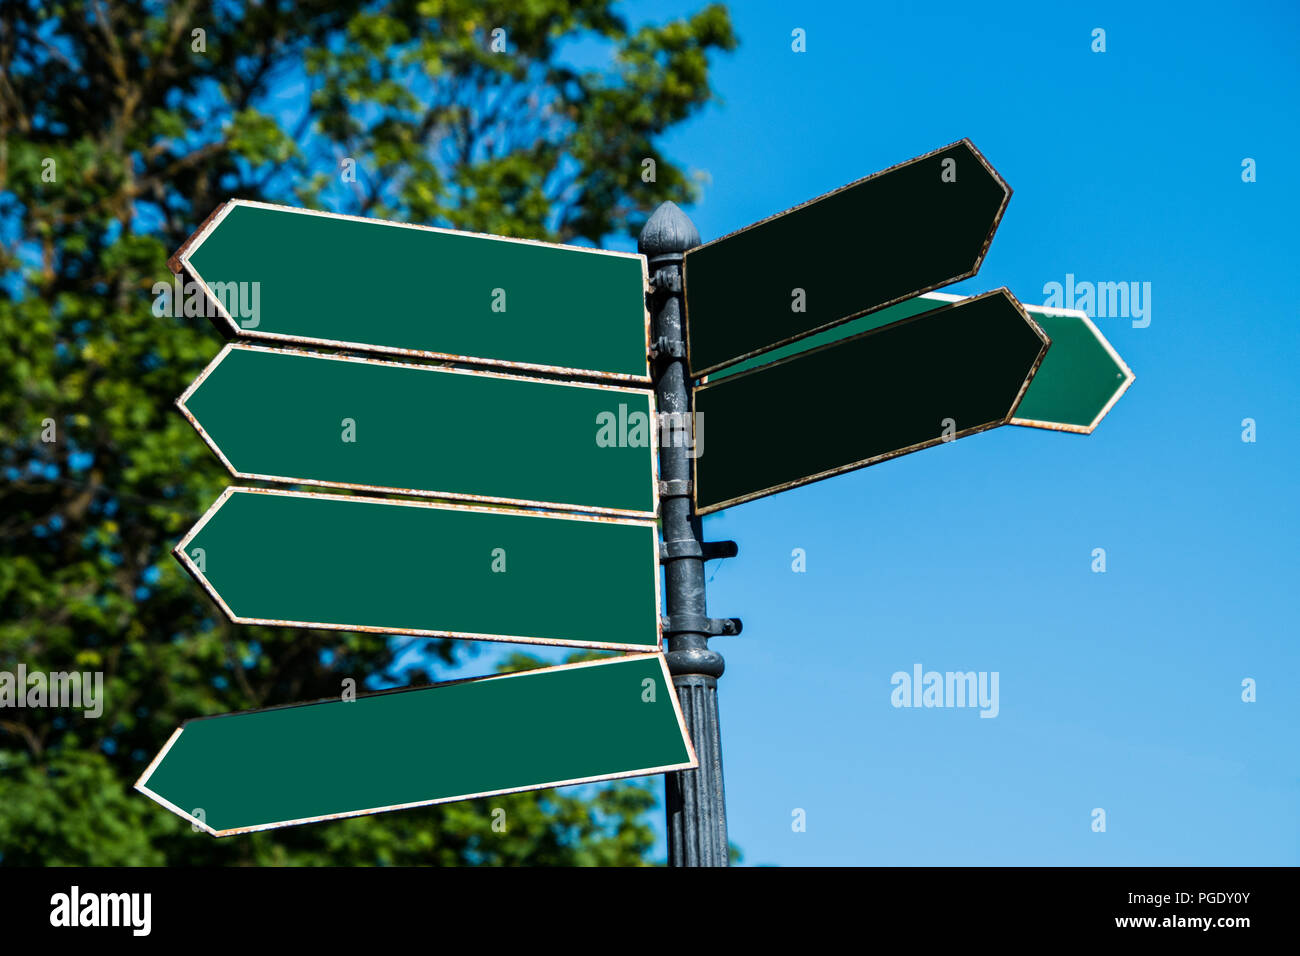 Multiple blank green arrow shaped directional street signs on a pole pointing in various directions - Stock Image